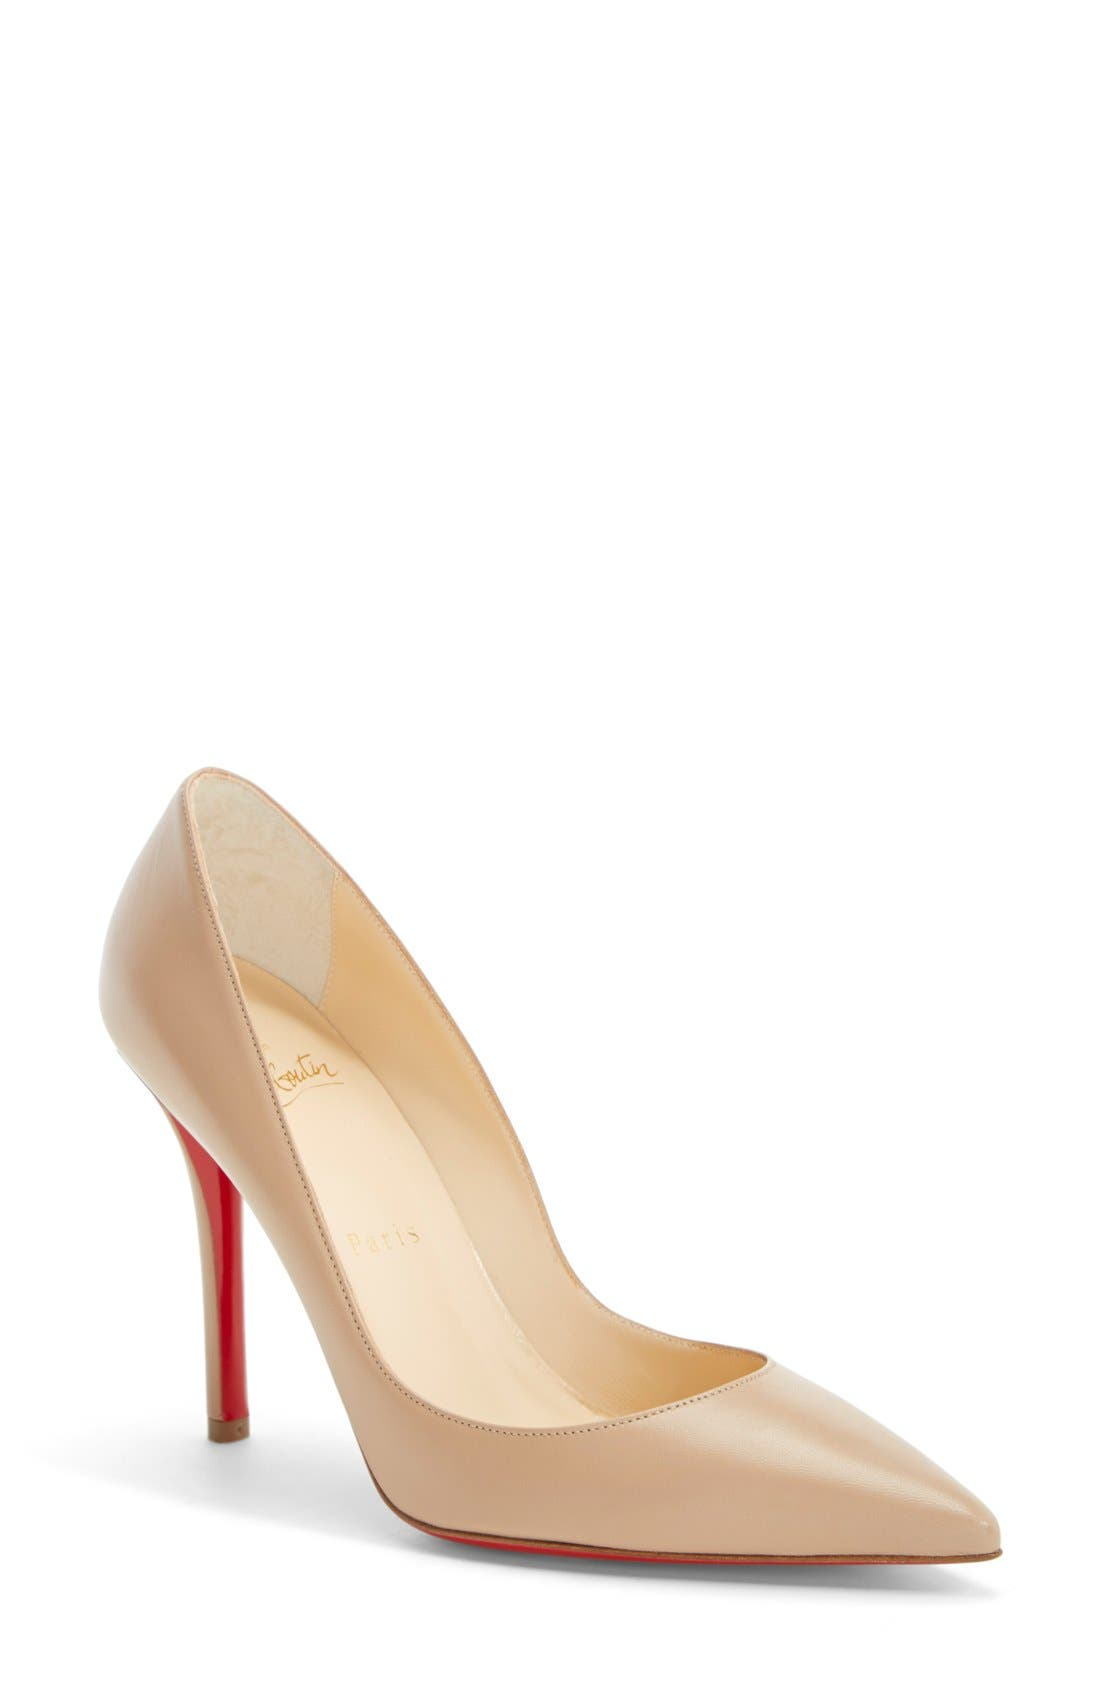 Alternate Image 1 Selected - Christian Louboutin 'Apostrophy' Pointy Toe Pump